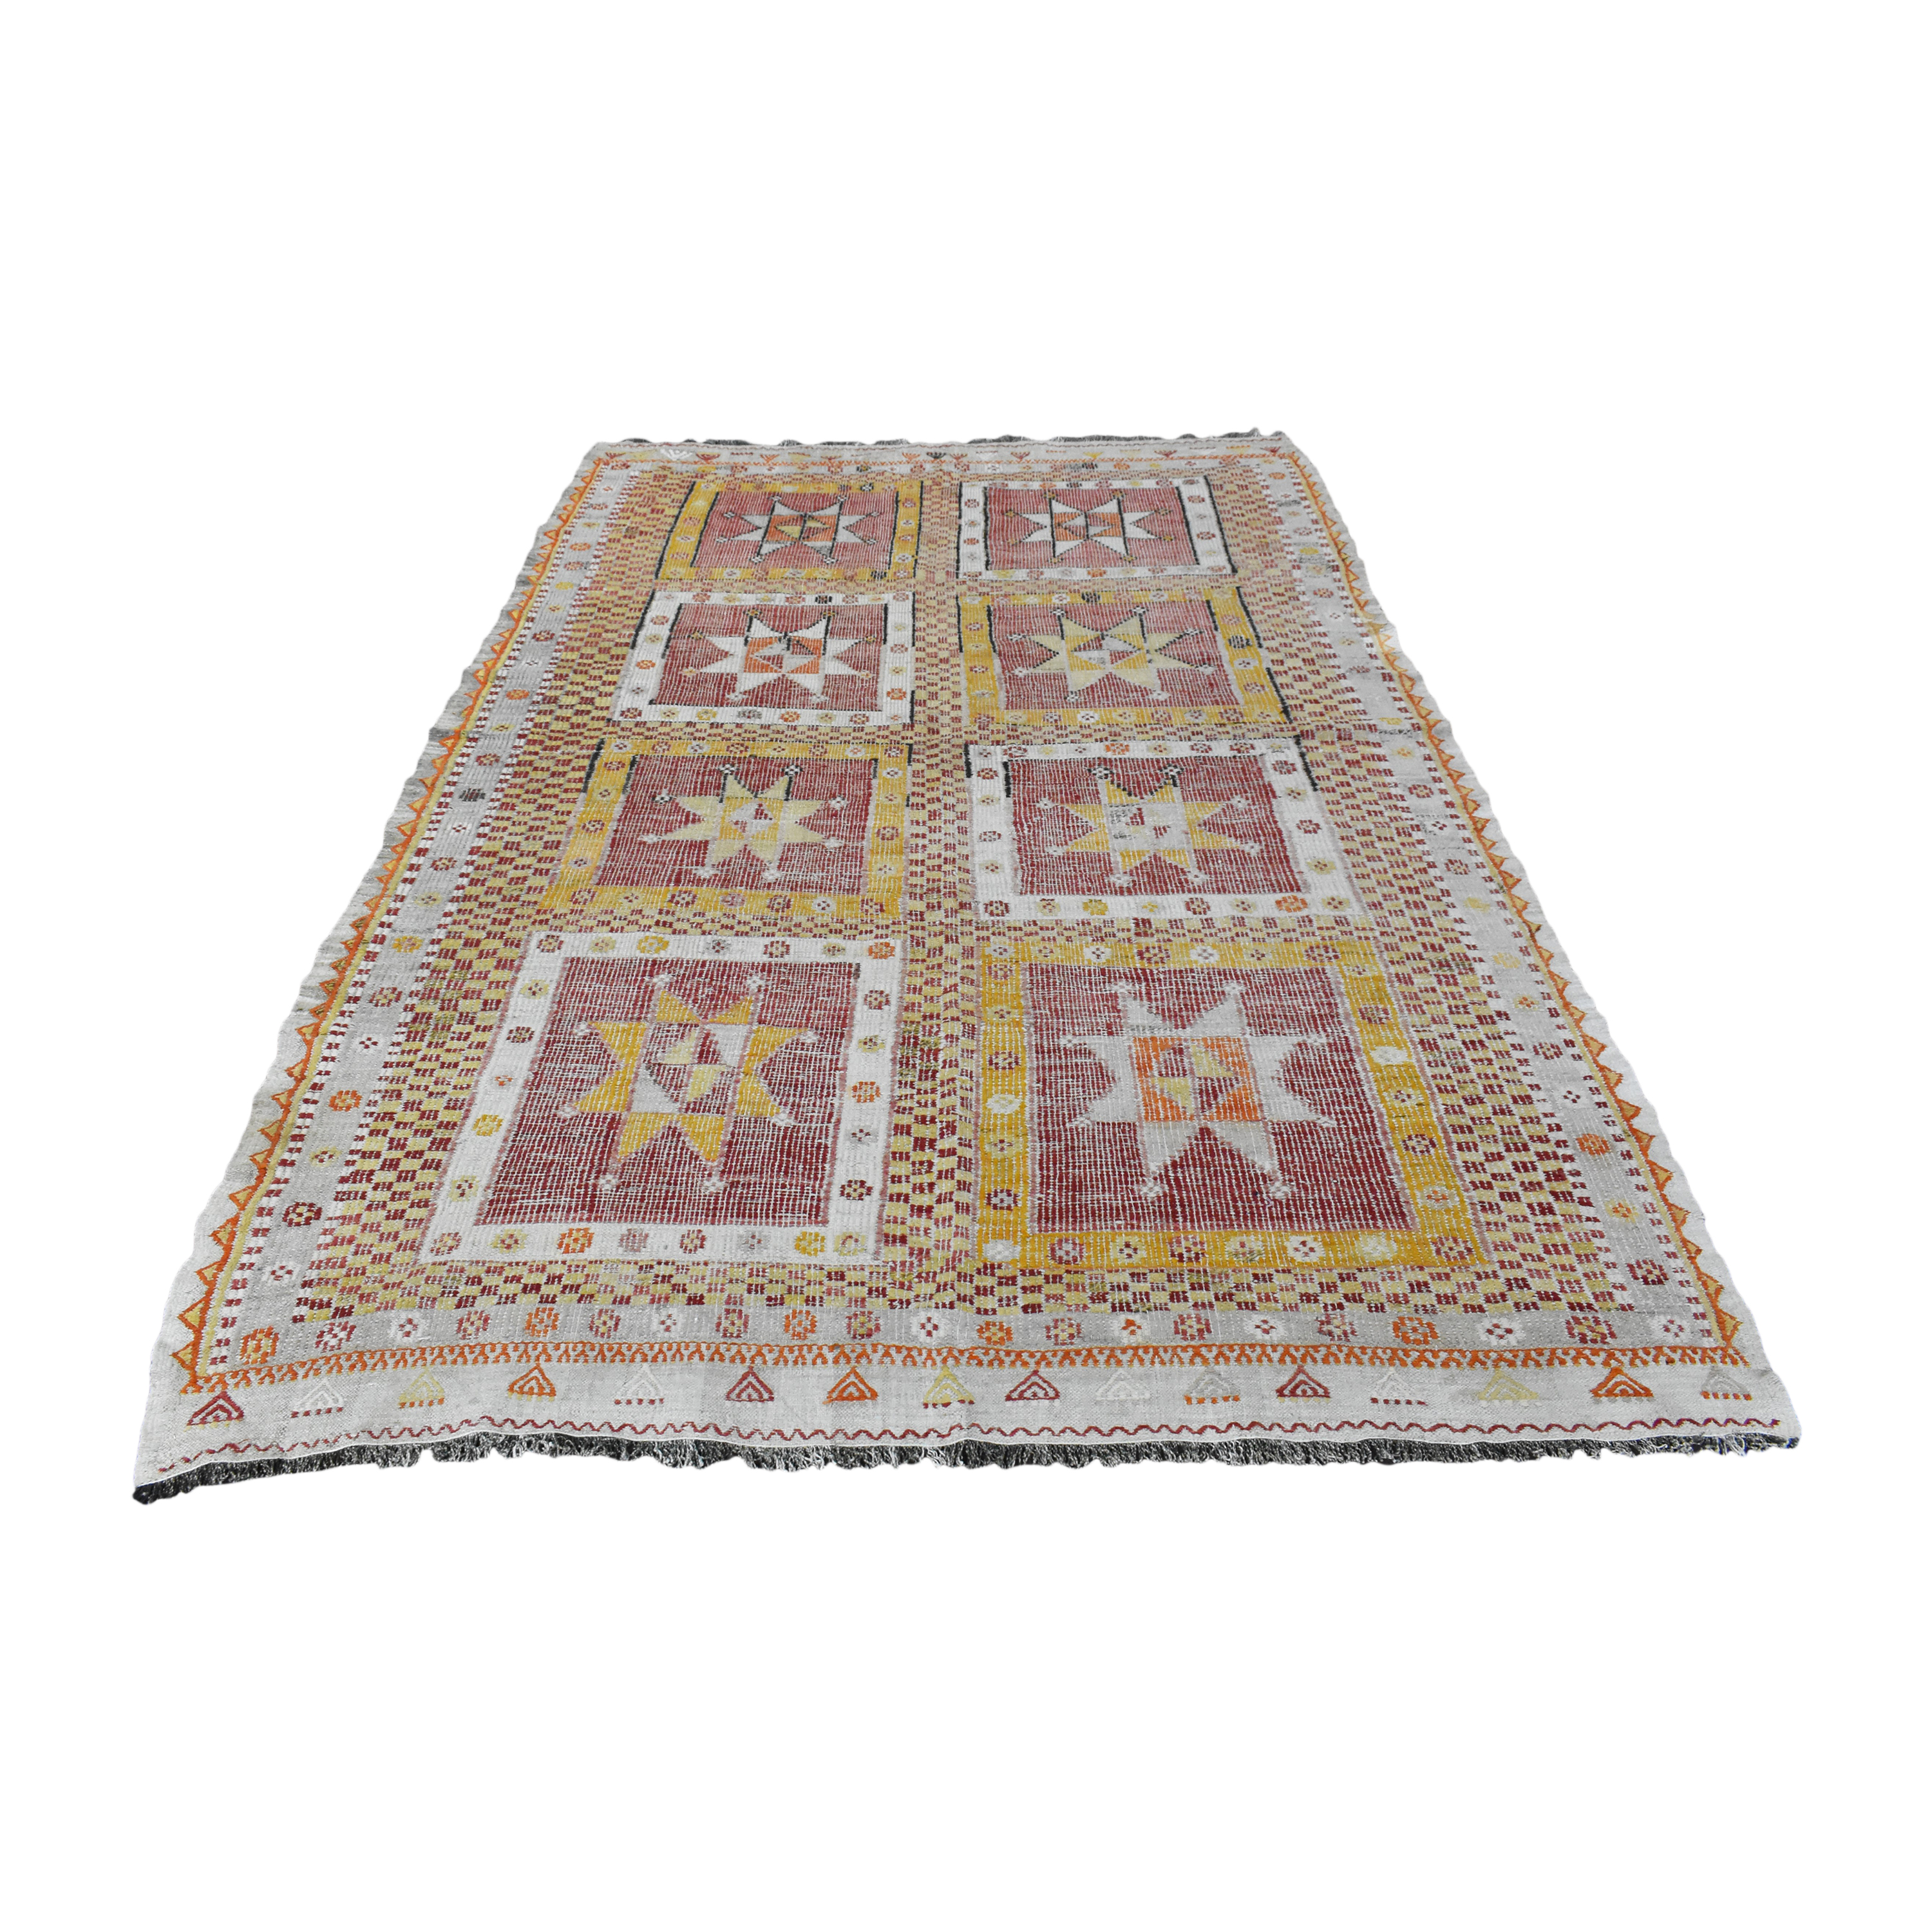 Double Knot Kilim Rug Double Knot